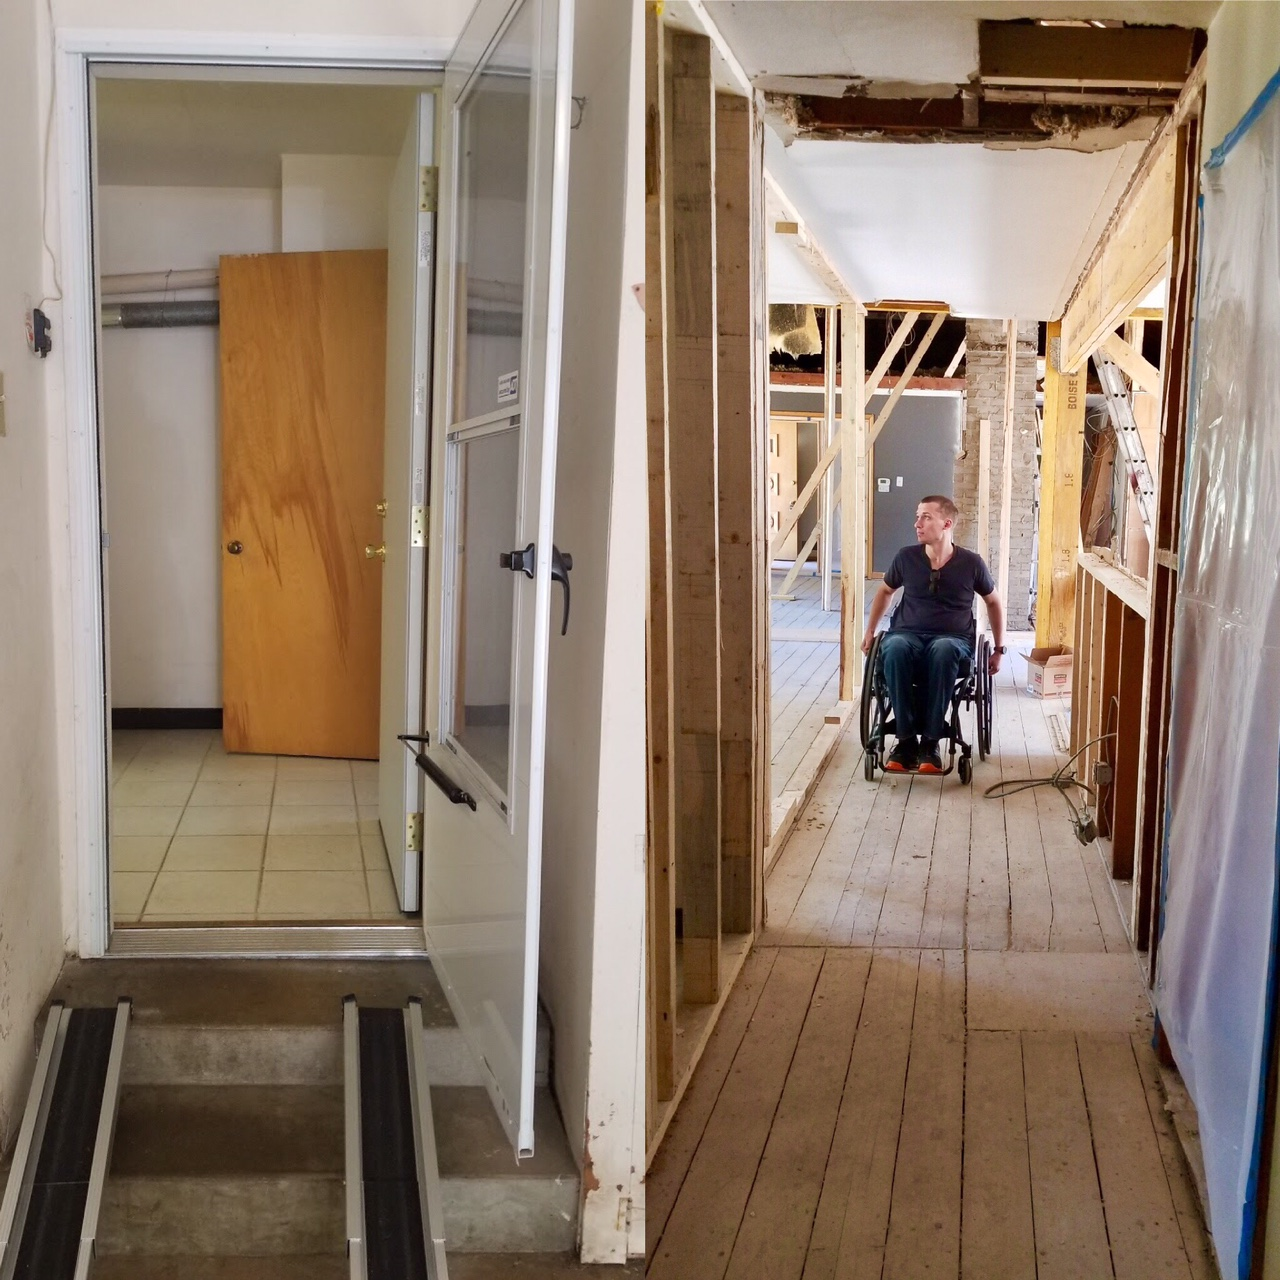 The entry from the garage. We opened up the wall to create a hallway directly into the main living space.